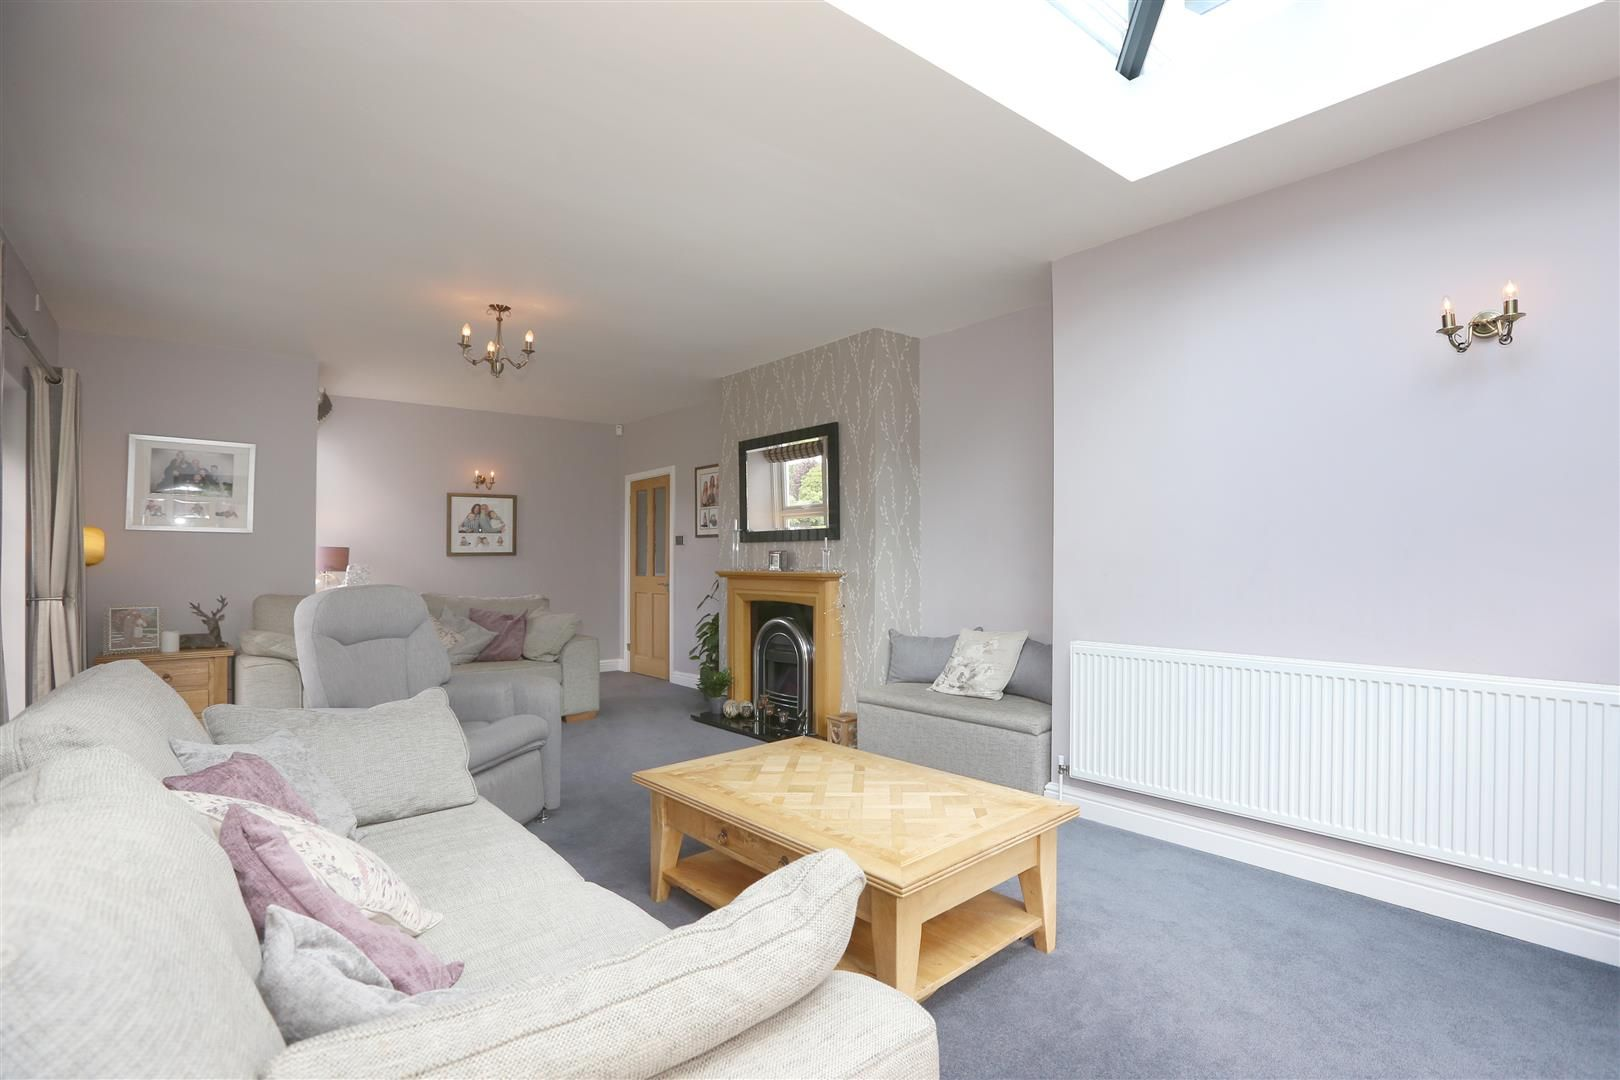 4 bed house for sale in Churchill 7